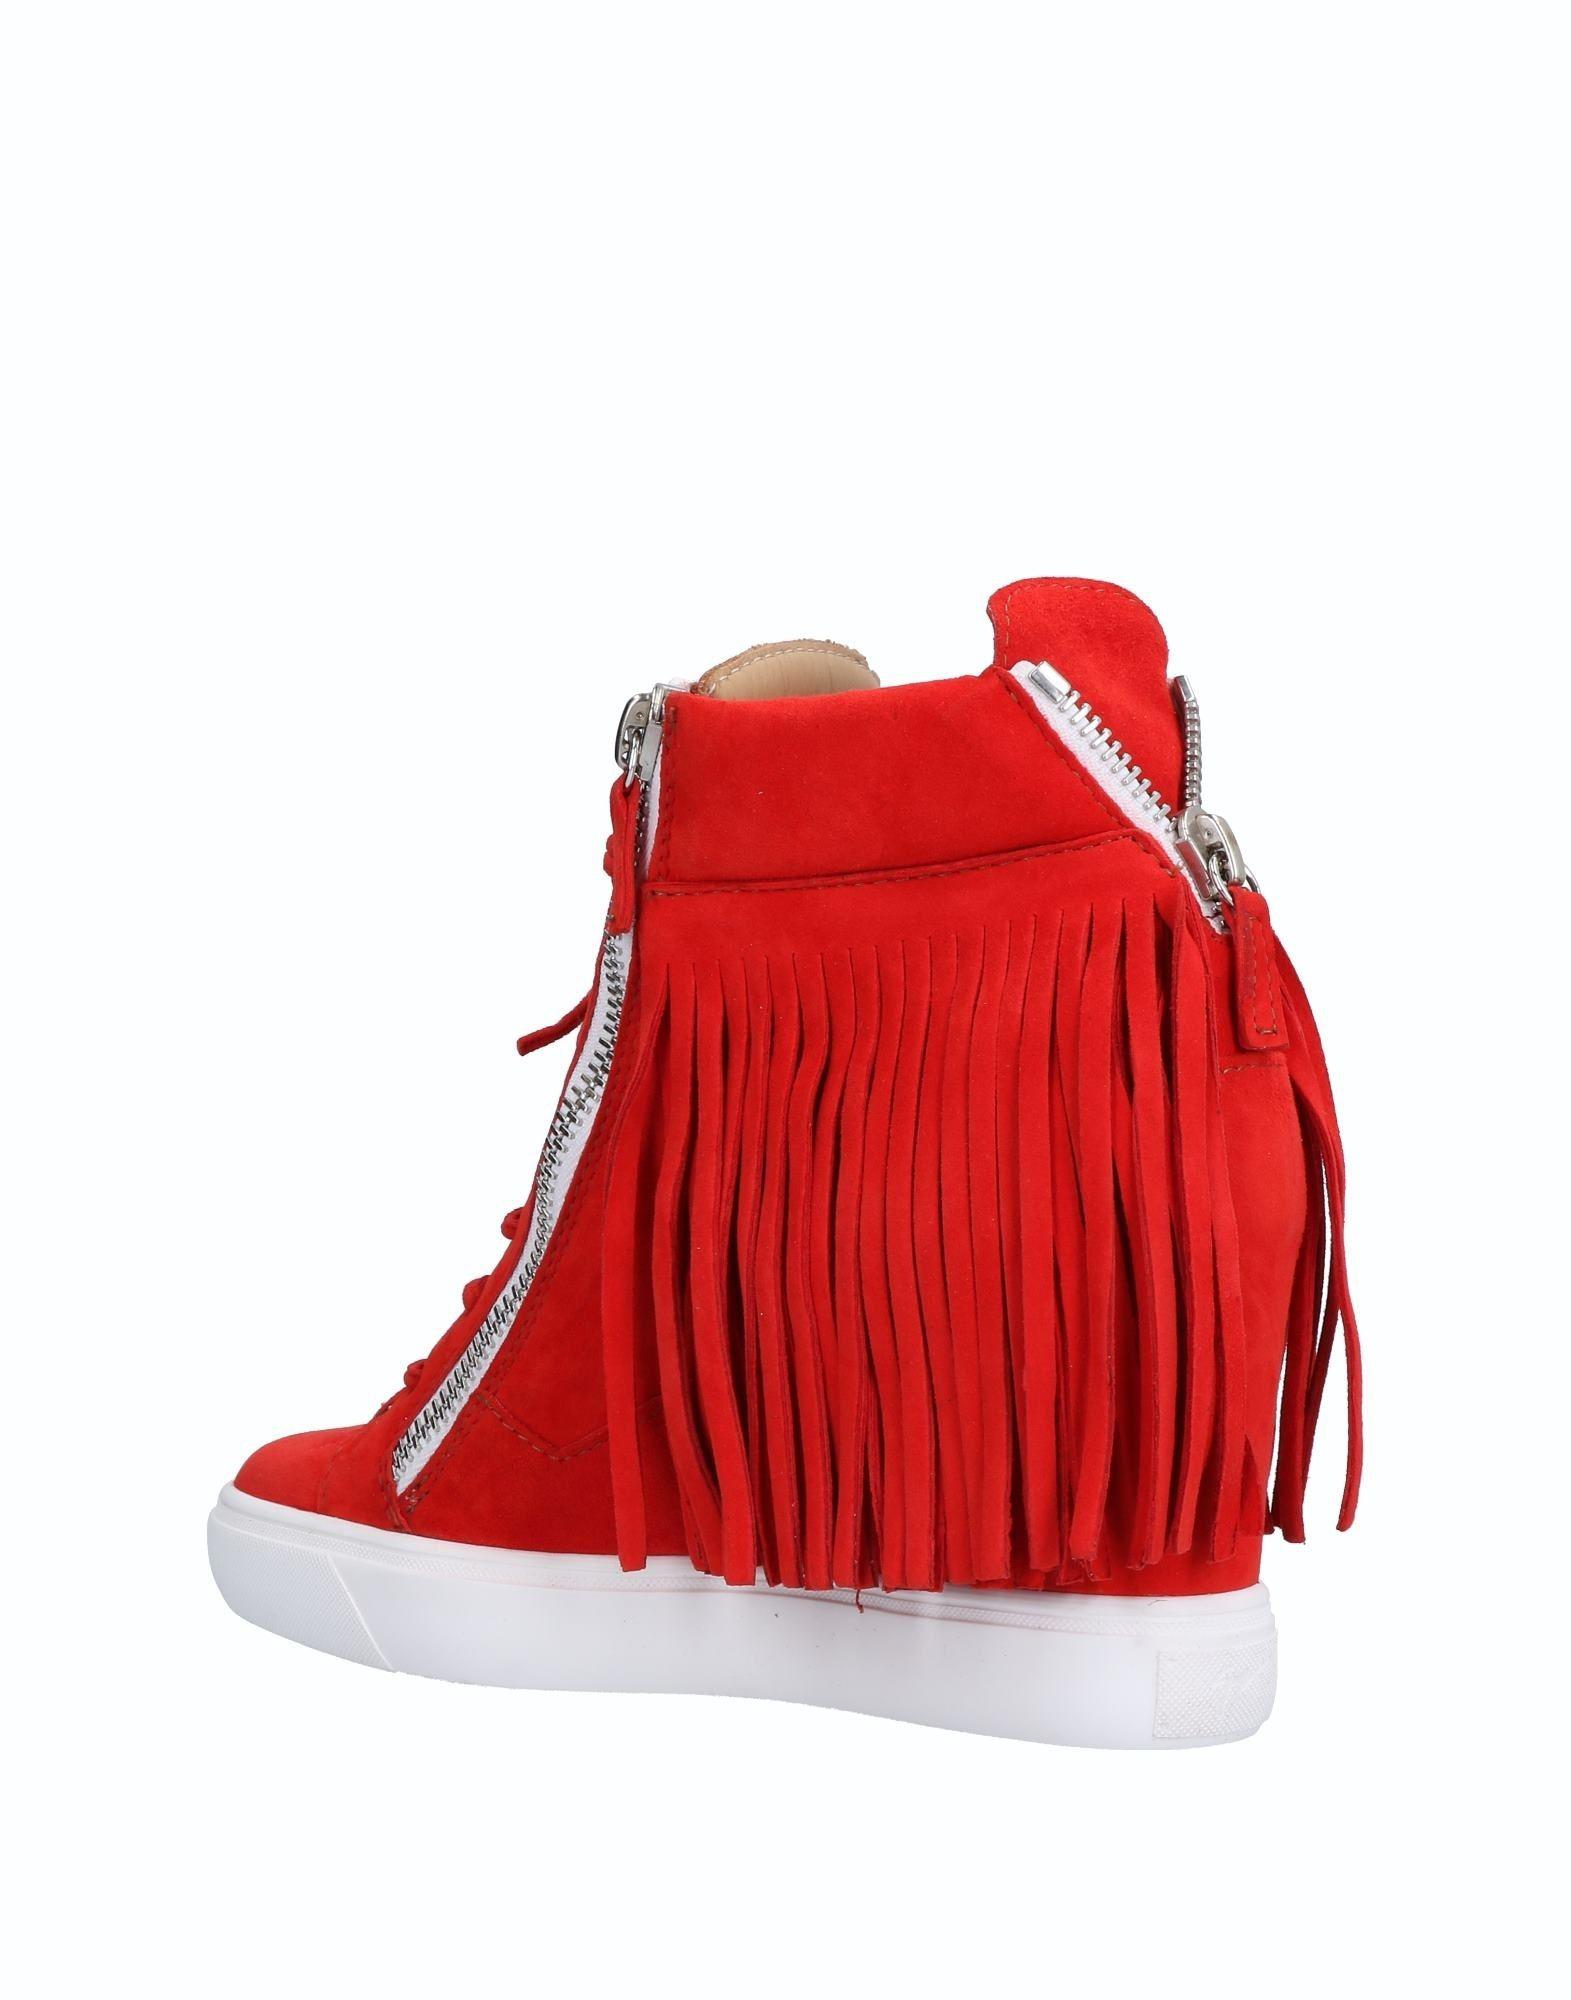 Giuseppe Zanotti Rubber High-tops & Sneakers in Red